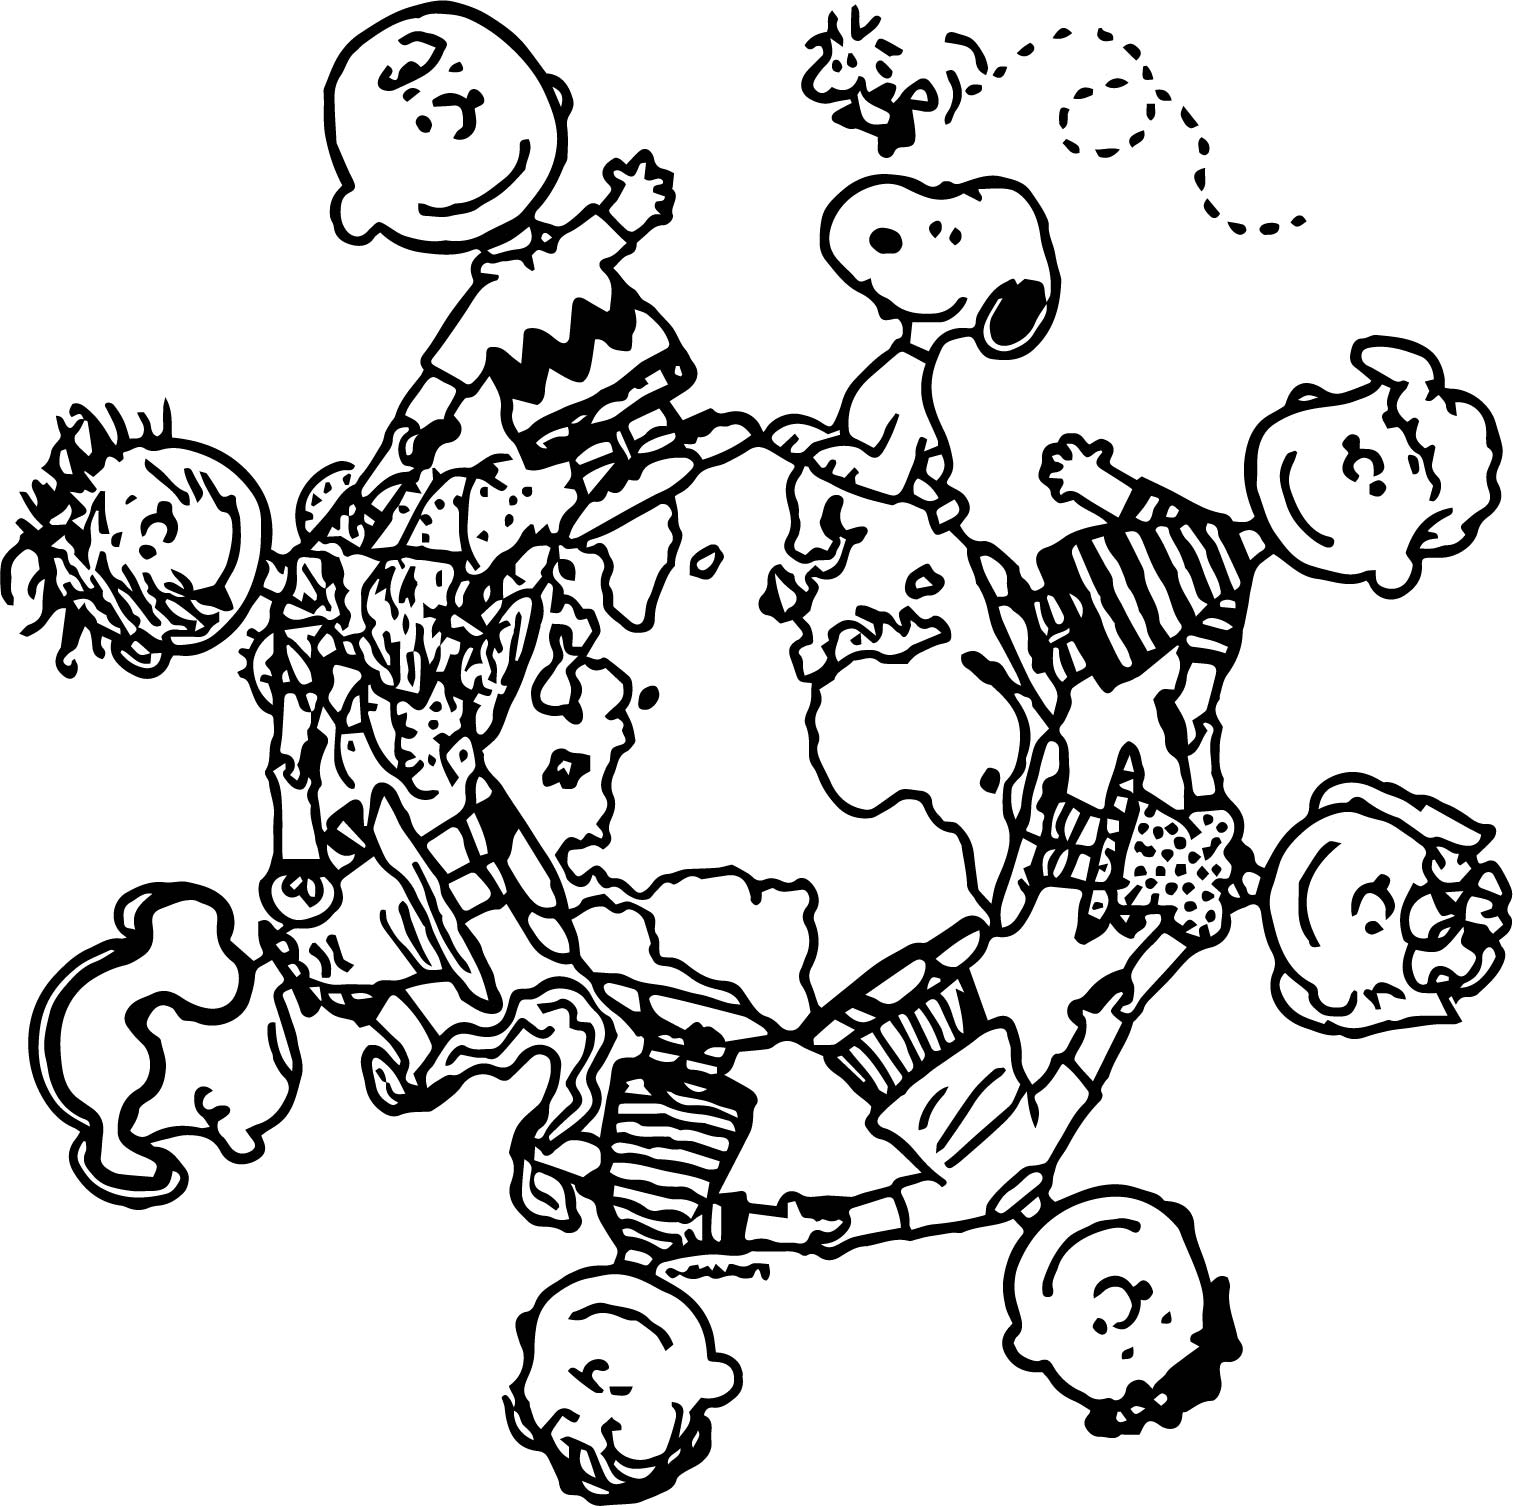 peanuts characters coloring pages - photo#27